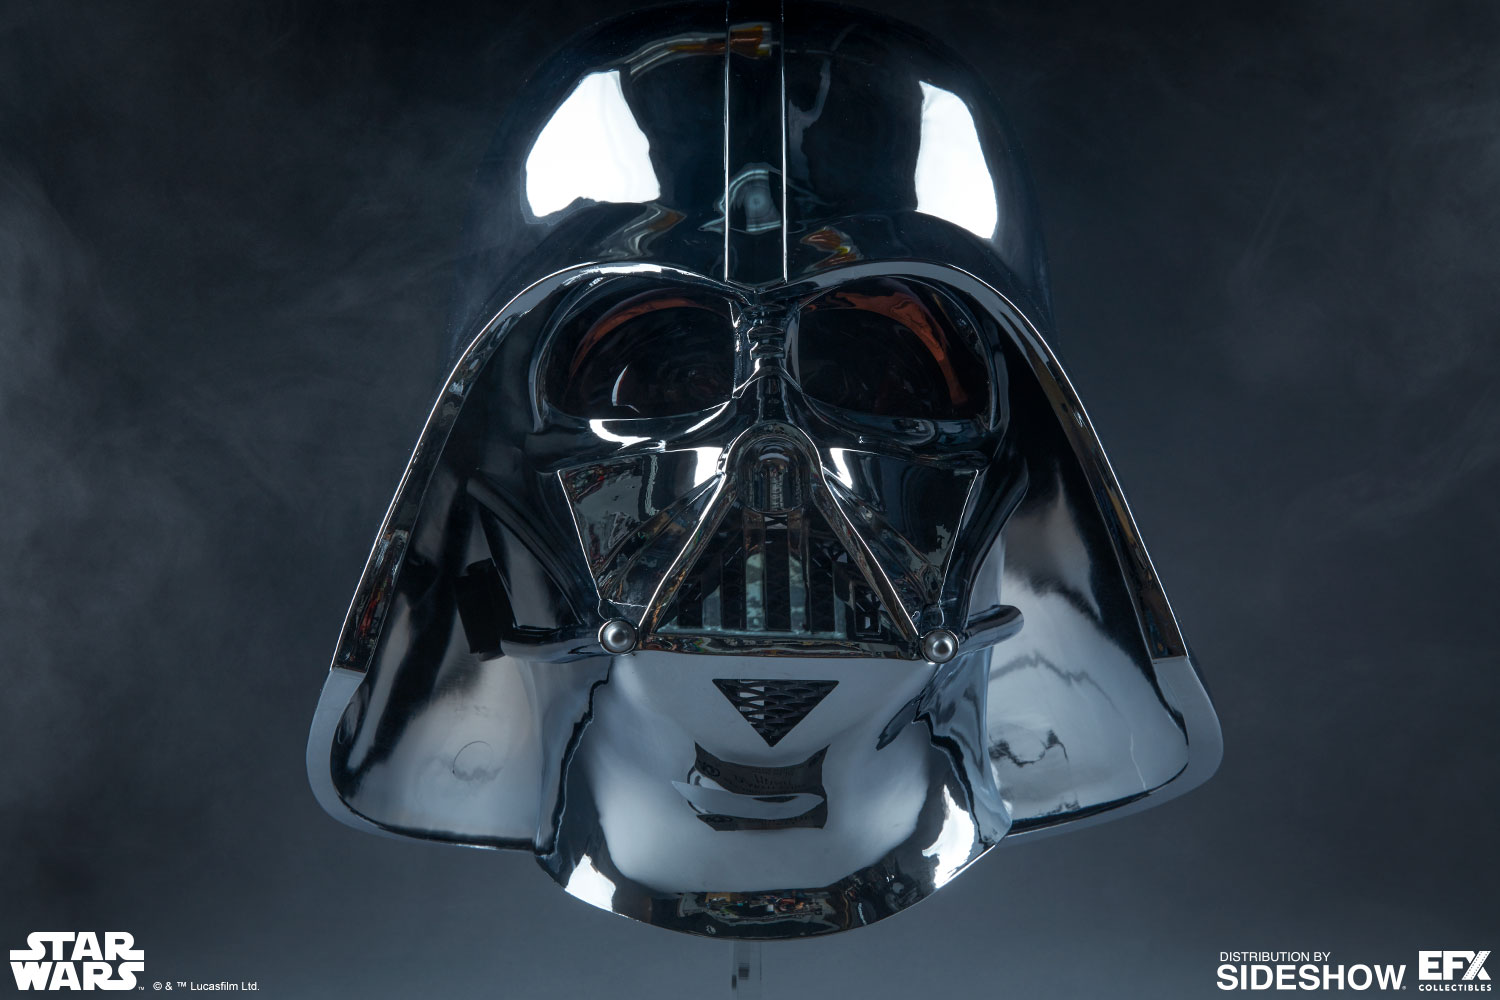 star wars darth vader helmet scaled replica by efx. Black Bedroom Furniture Sets. Home Design Ideas